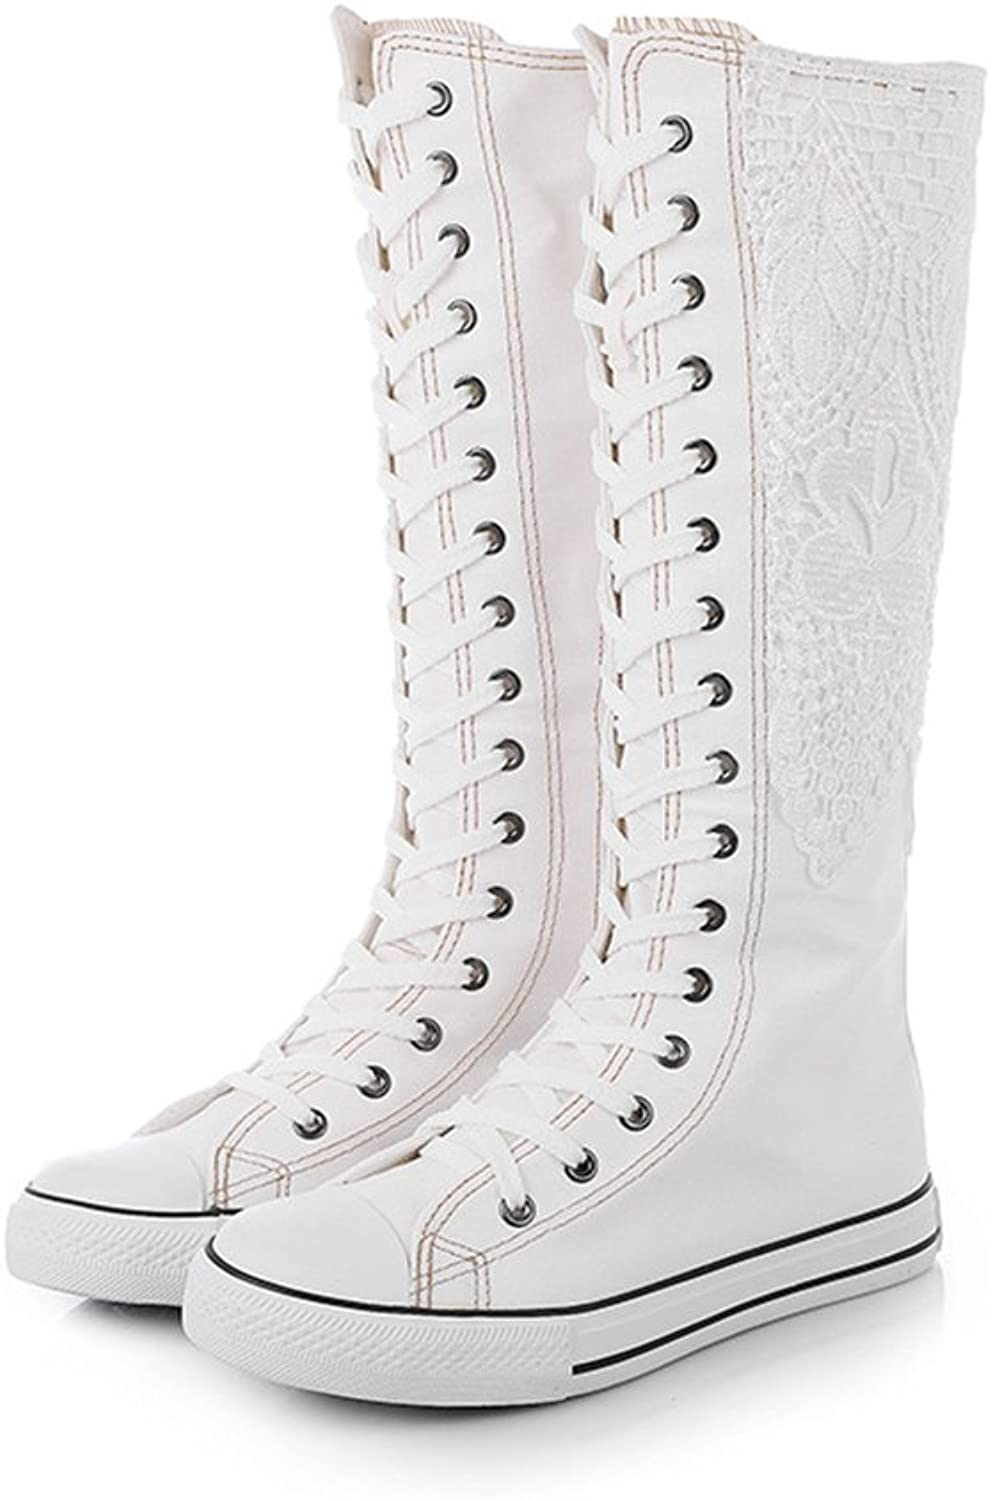 AGoGo Women's Lace Up Dancing Canvas Knee-High Boots